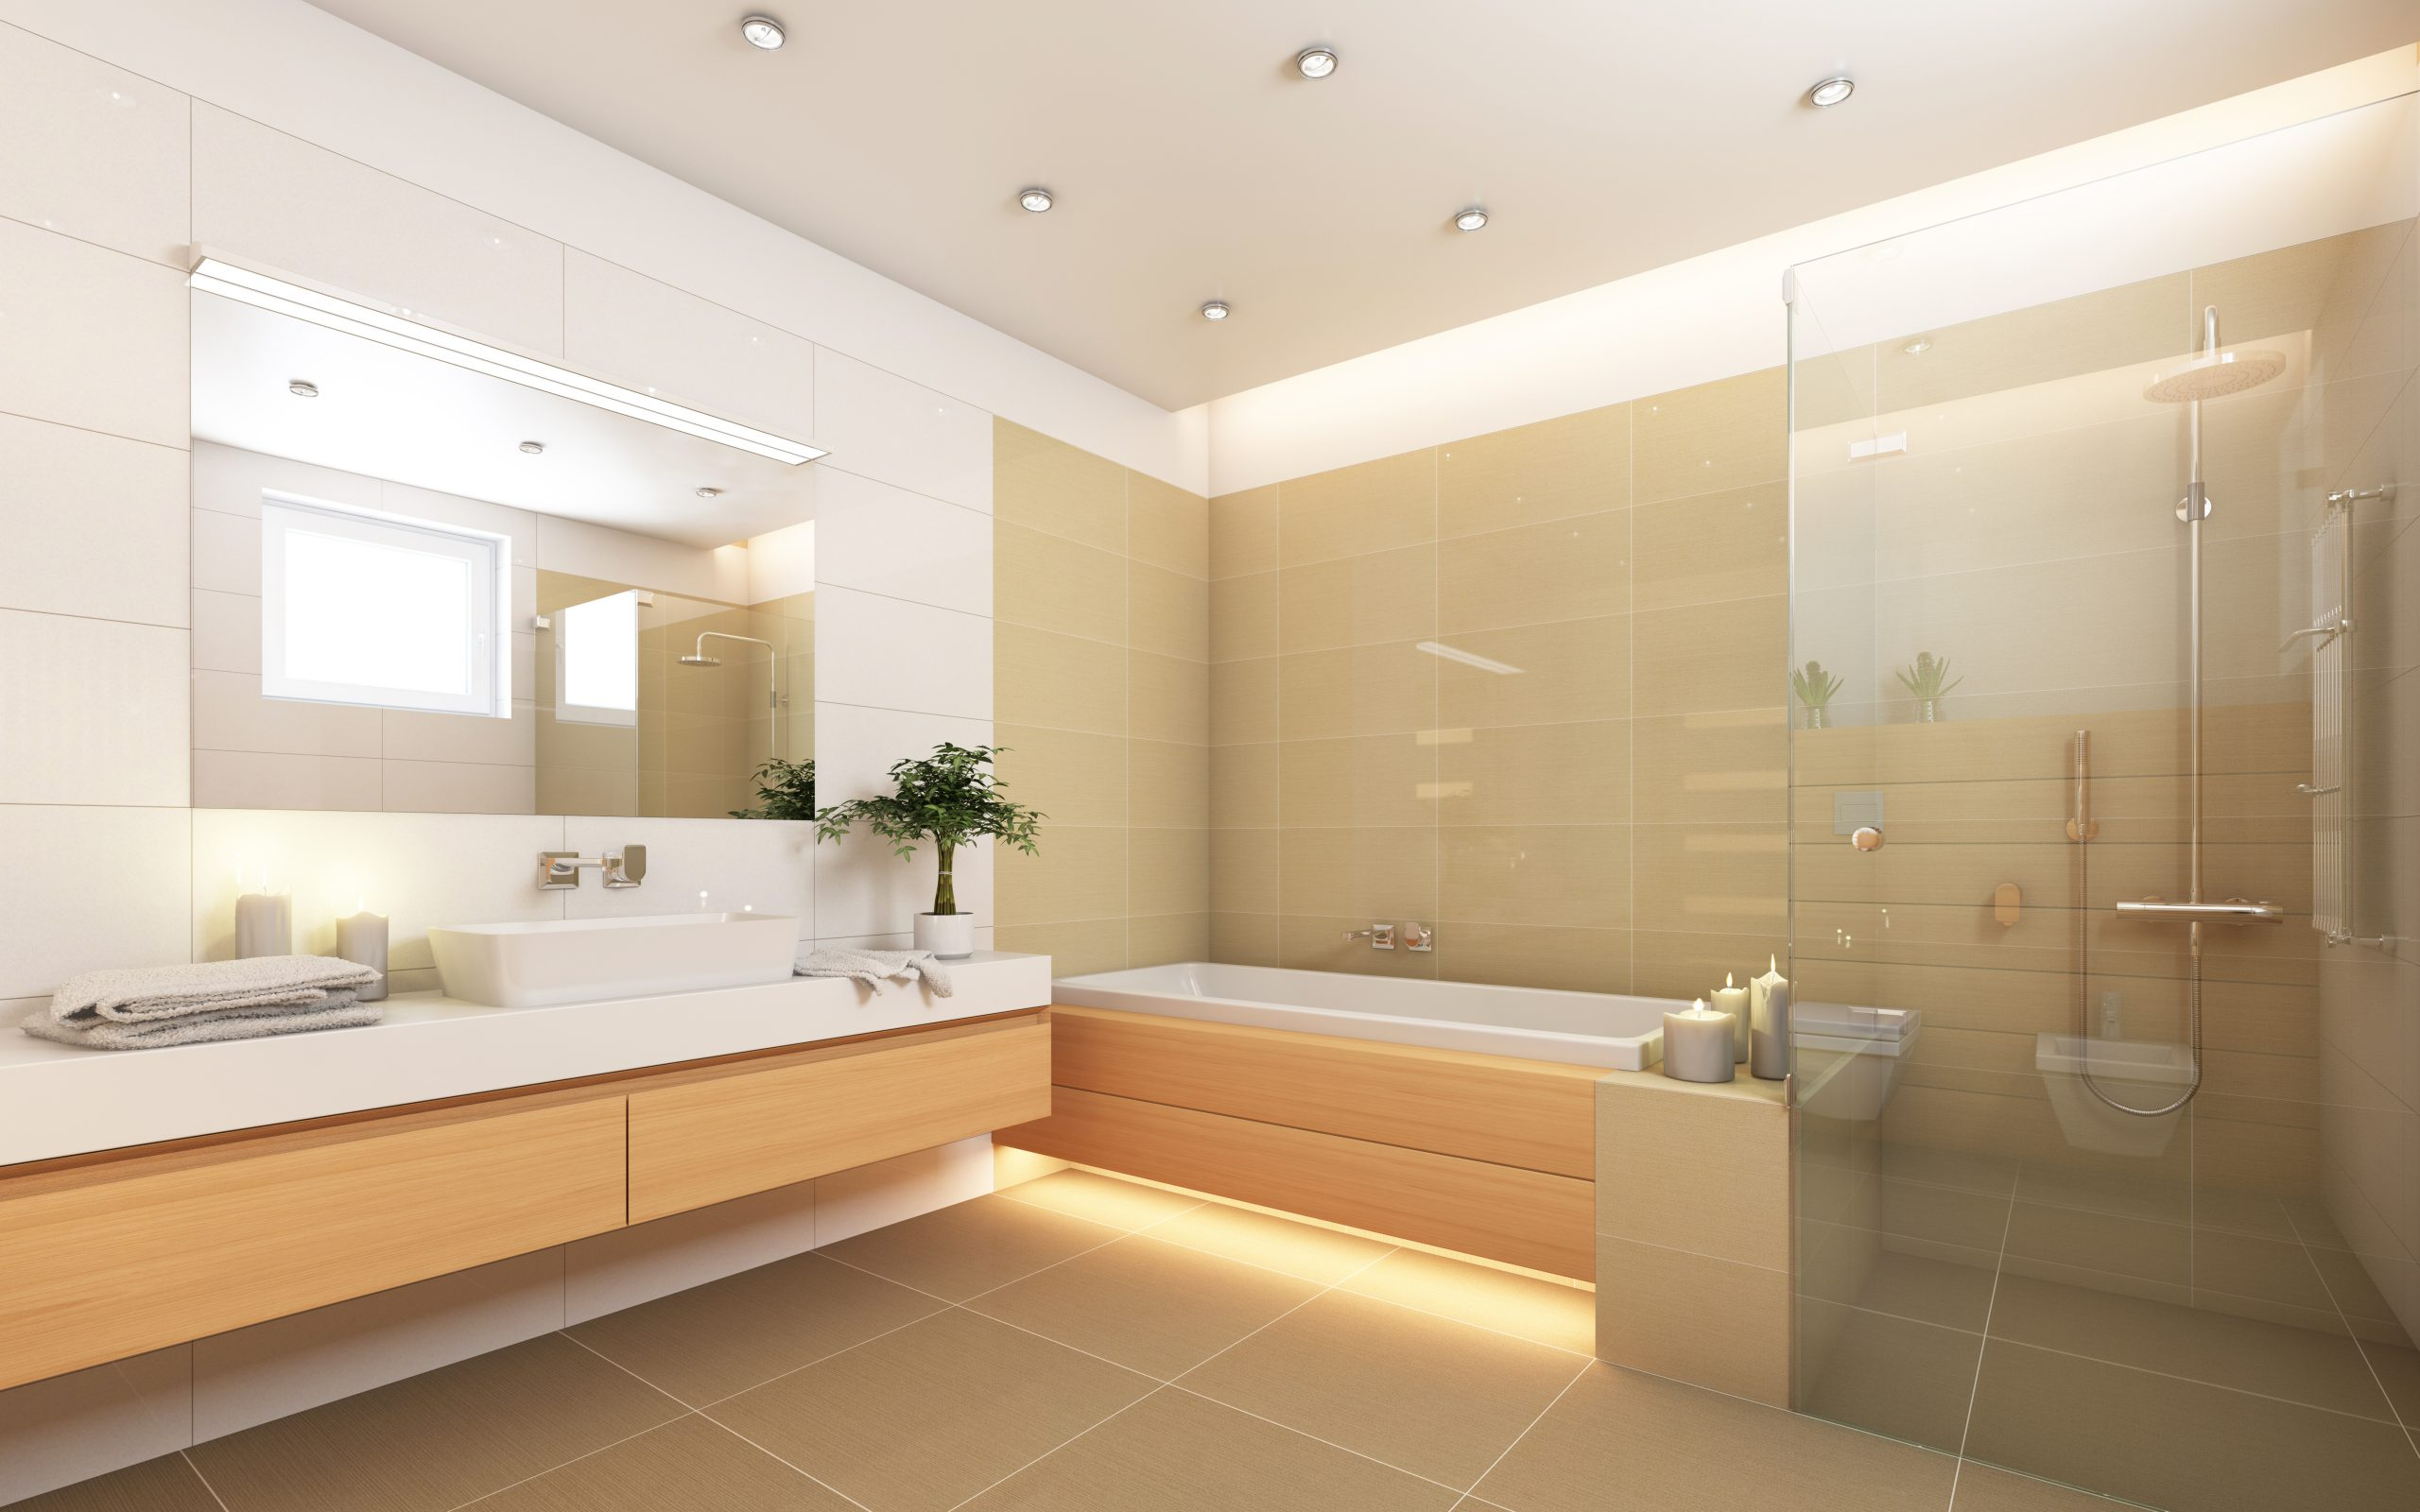 open layout bathroom hanging sink, frameless shower and bathtub and candles